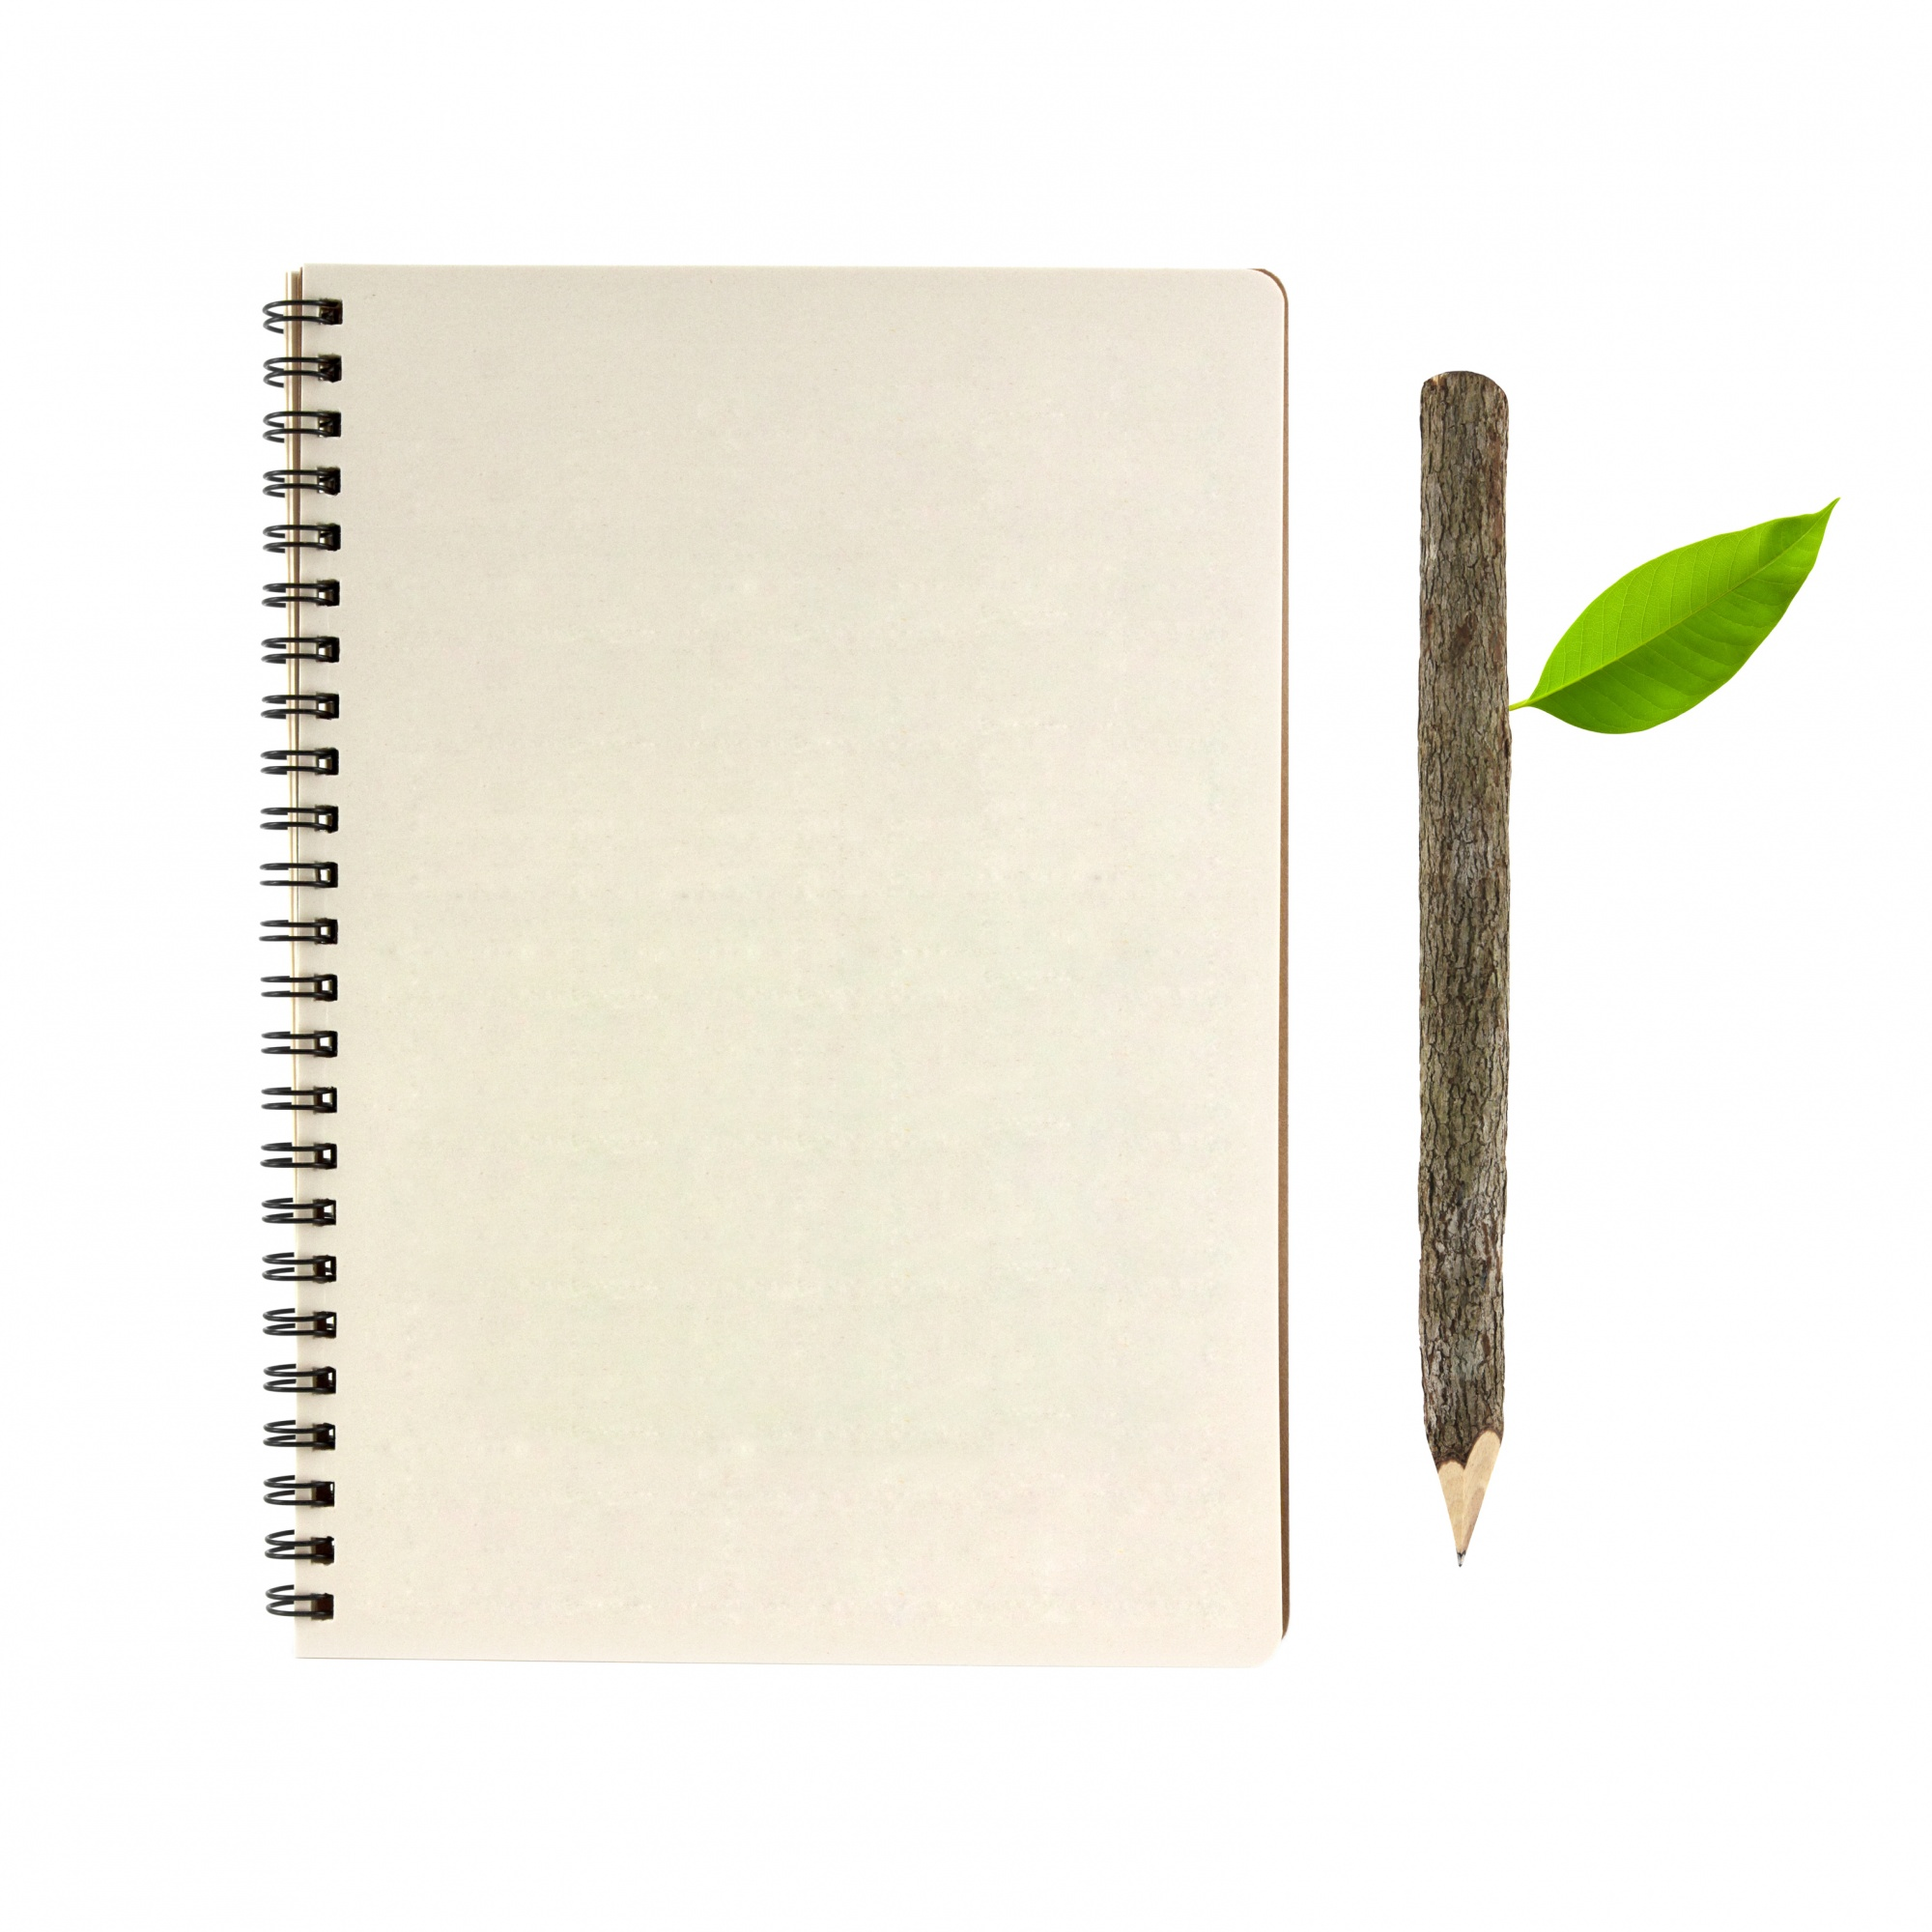 Bark pencil wooden reminder notebook plain